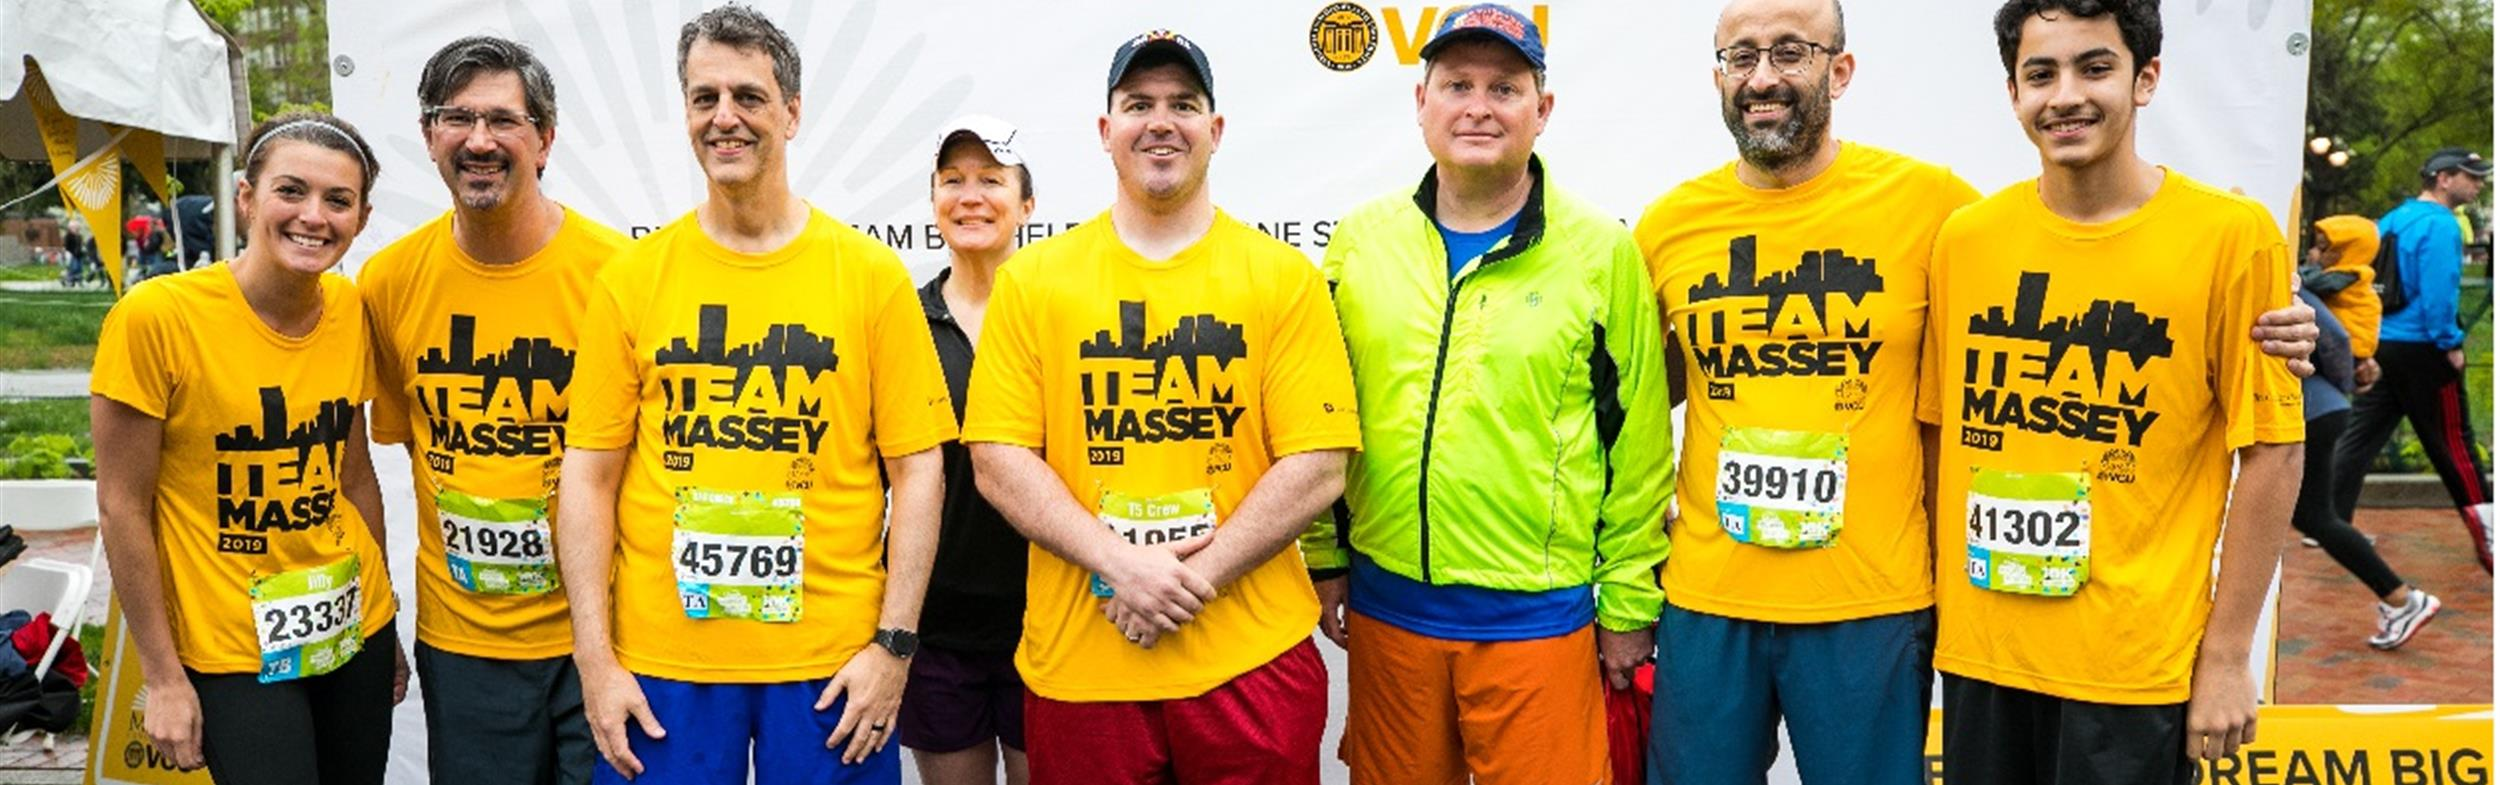 TEAM_MASSEY_10K2019-Docs_and_Talley_5.jpg